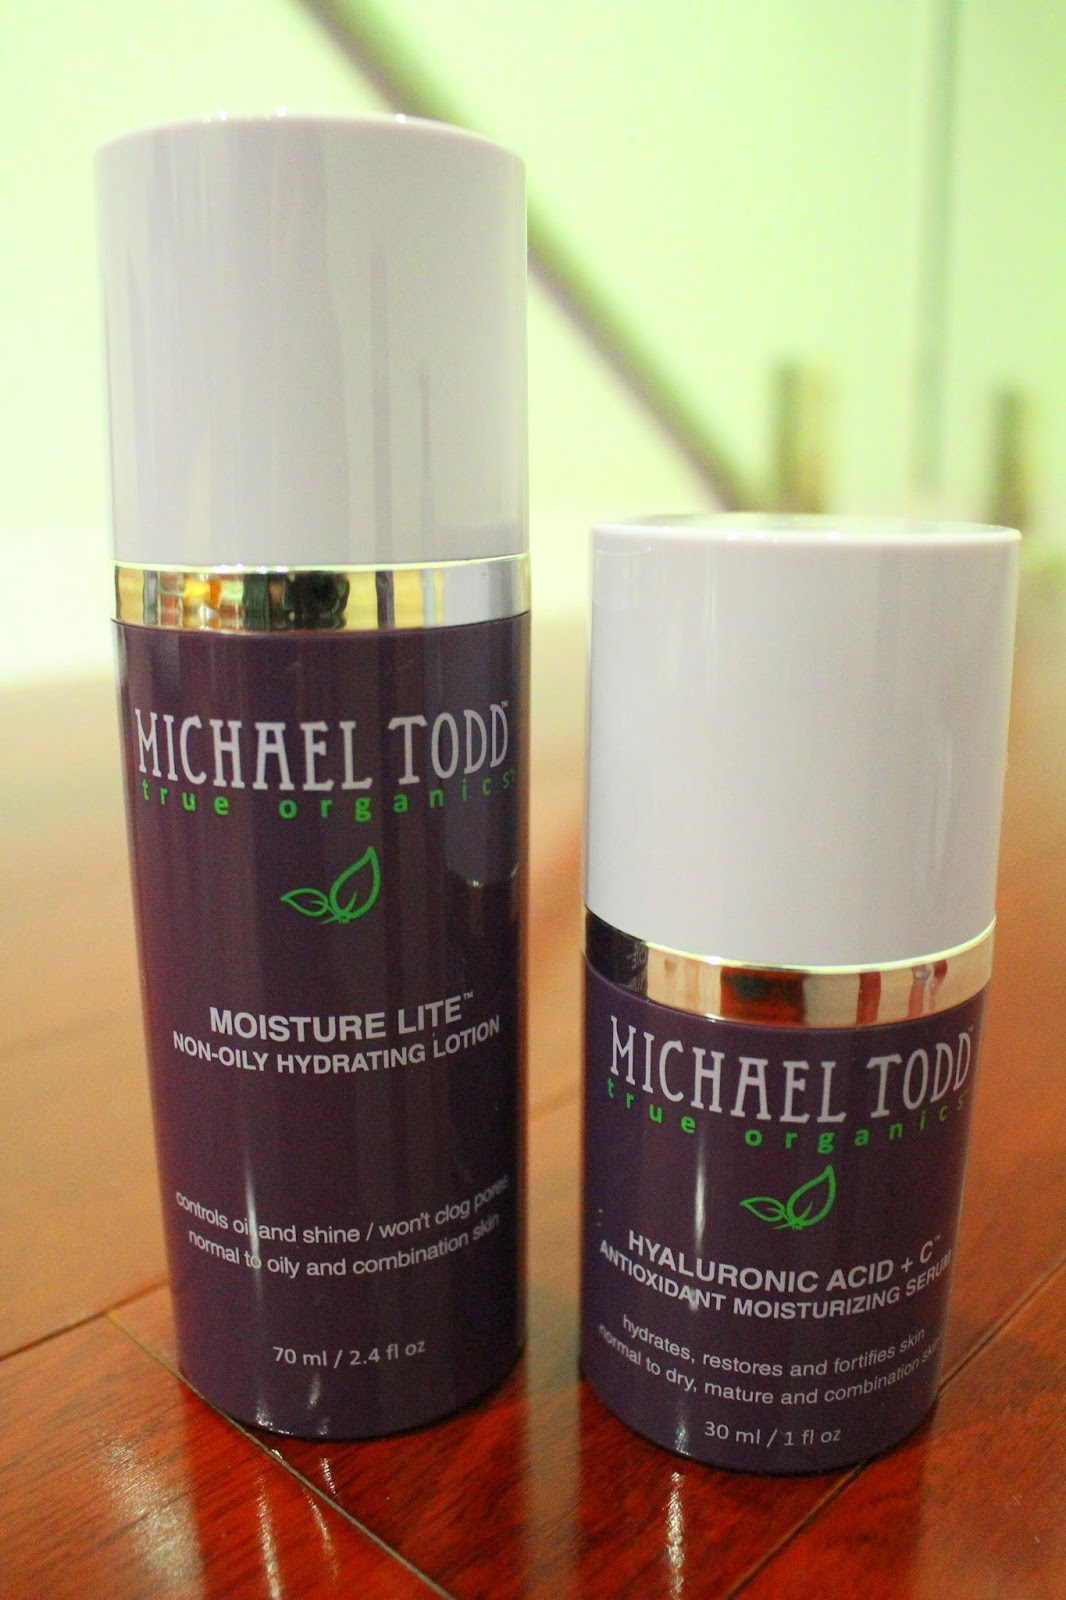 Michael Todd Moisture Lite Non-Oily Hydrating Lotion and Hyaluronic Acid + C Antioxidant Moisturising Serum